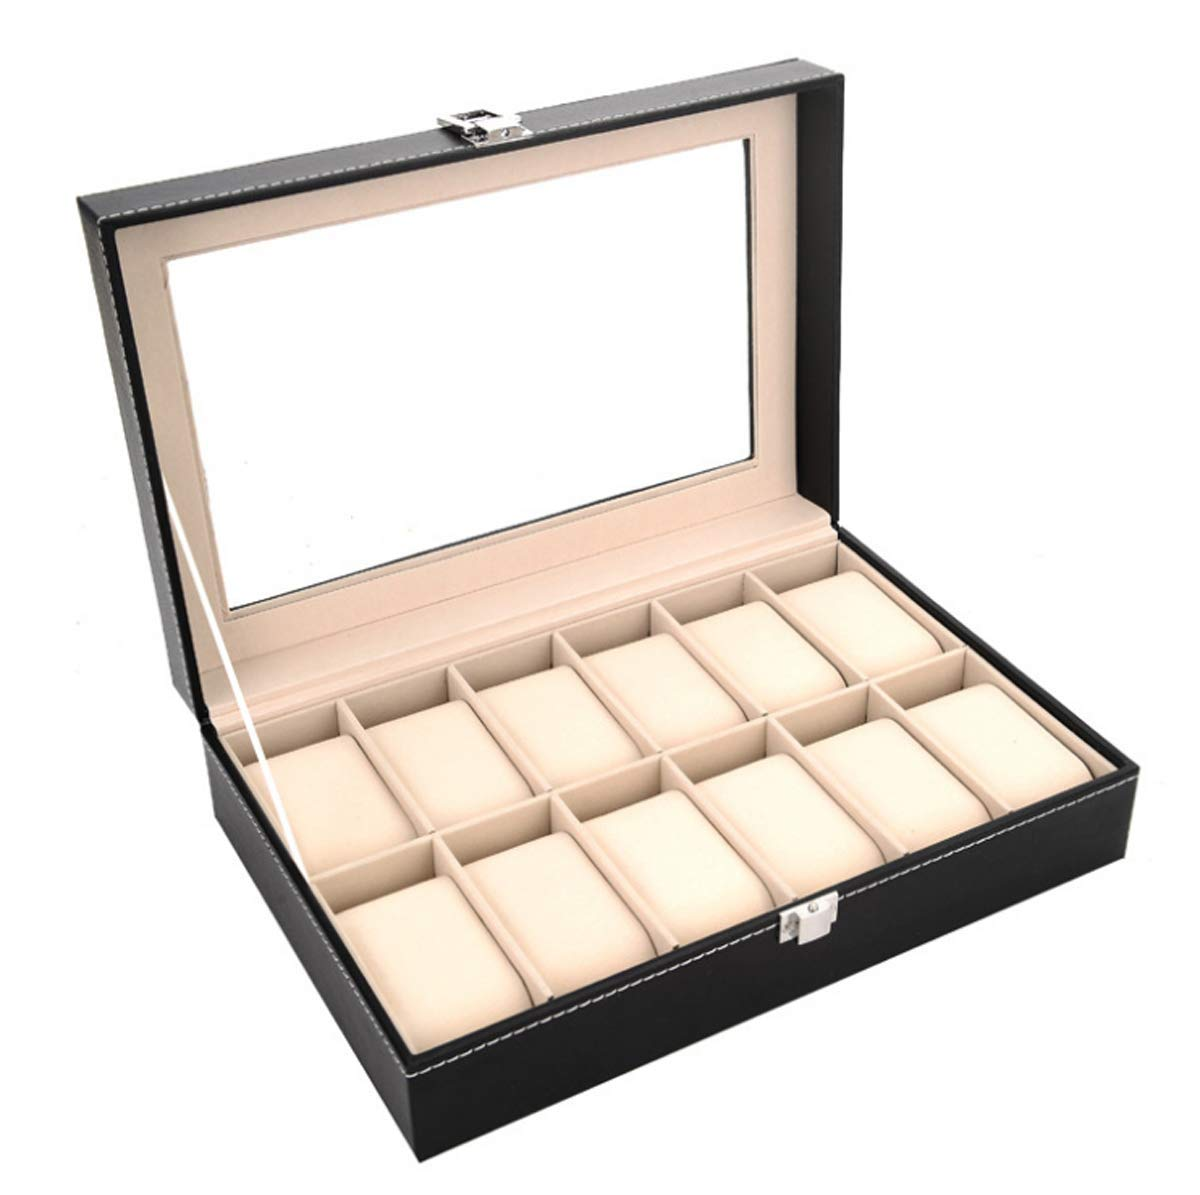 Other 12 Grid Leather Watch Display Case Jewelry Collection Storage Organizer Box Holder        Amazon imported products in Islamabad